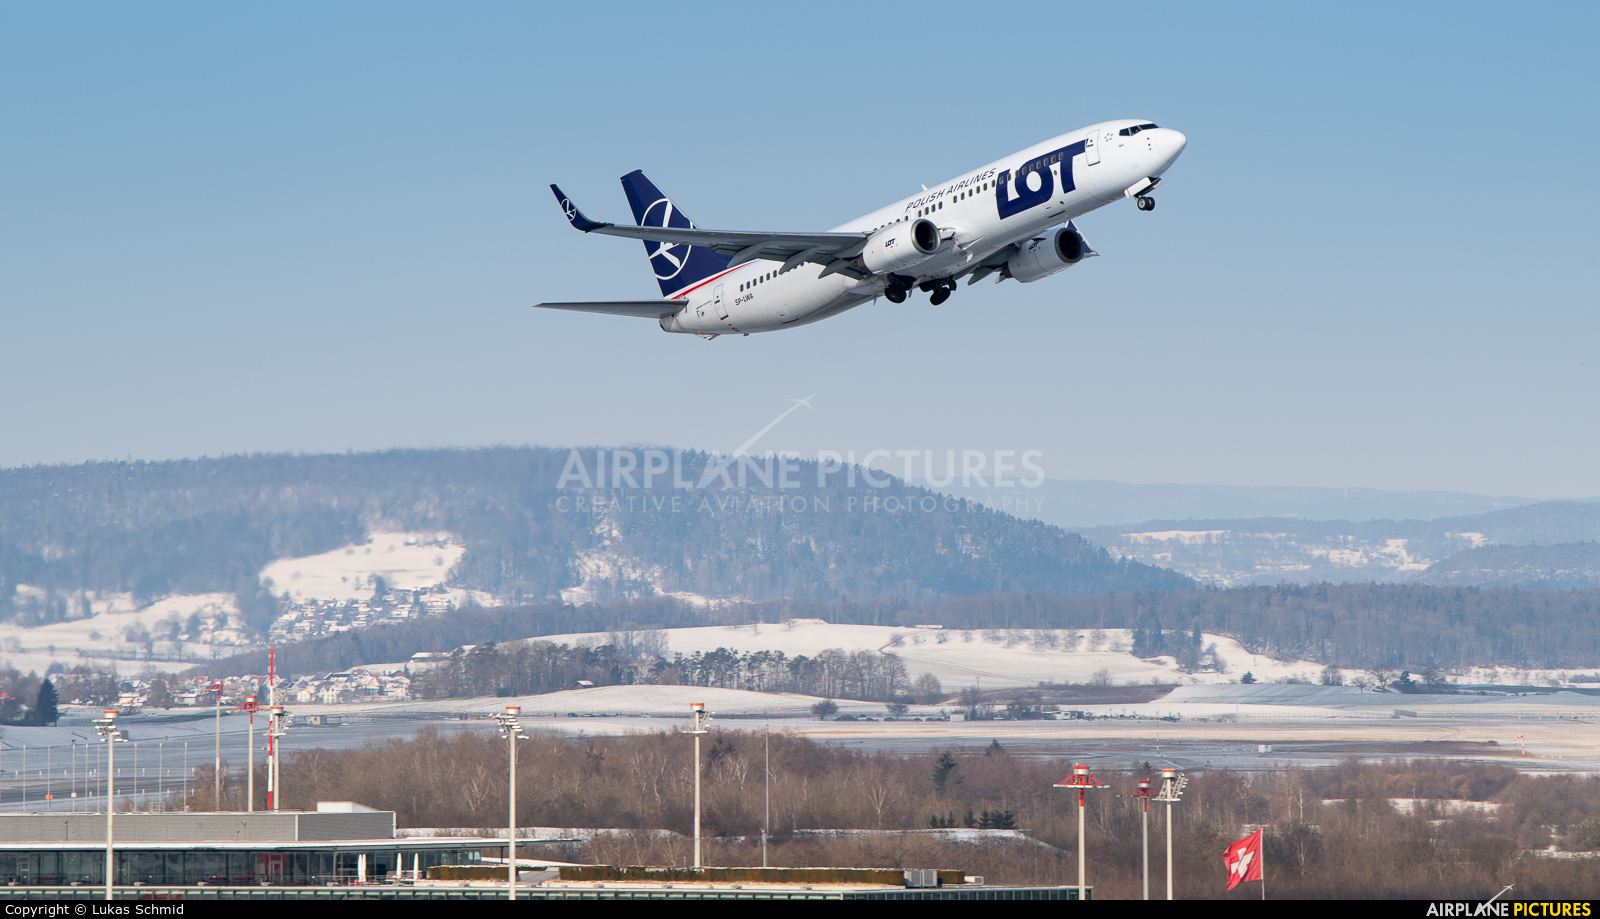 LOT - Polish Airlines SP-LWA aircraft at Zurich